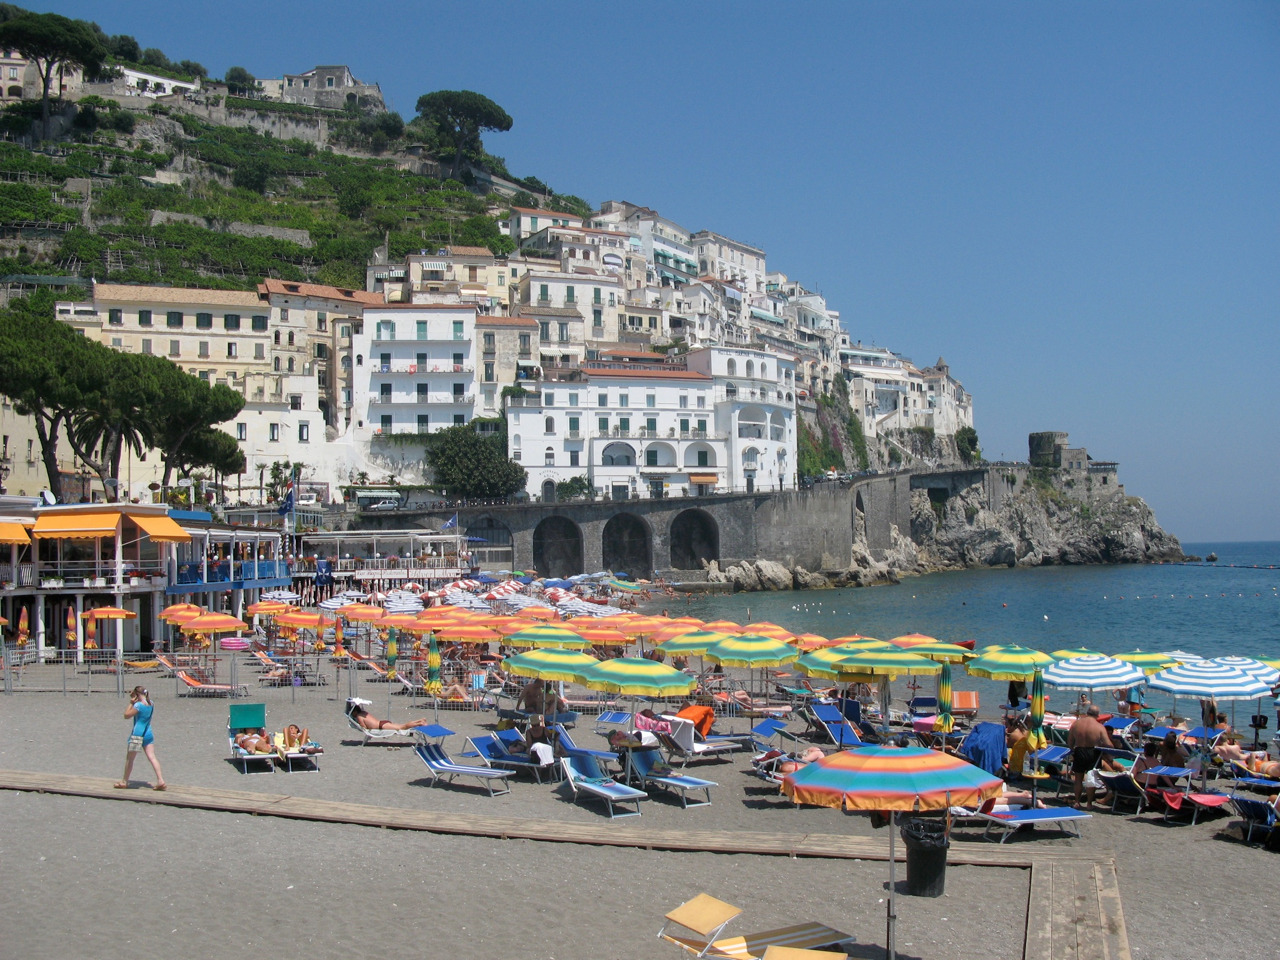 mediterraneancliff:  Private hotel beach on Italy's amalfi coast